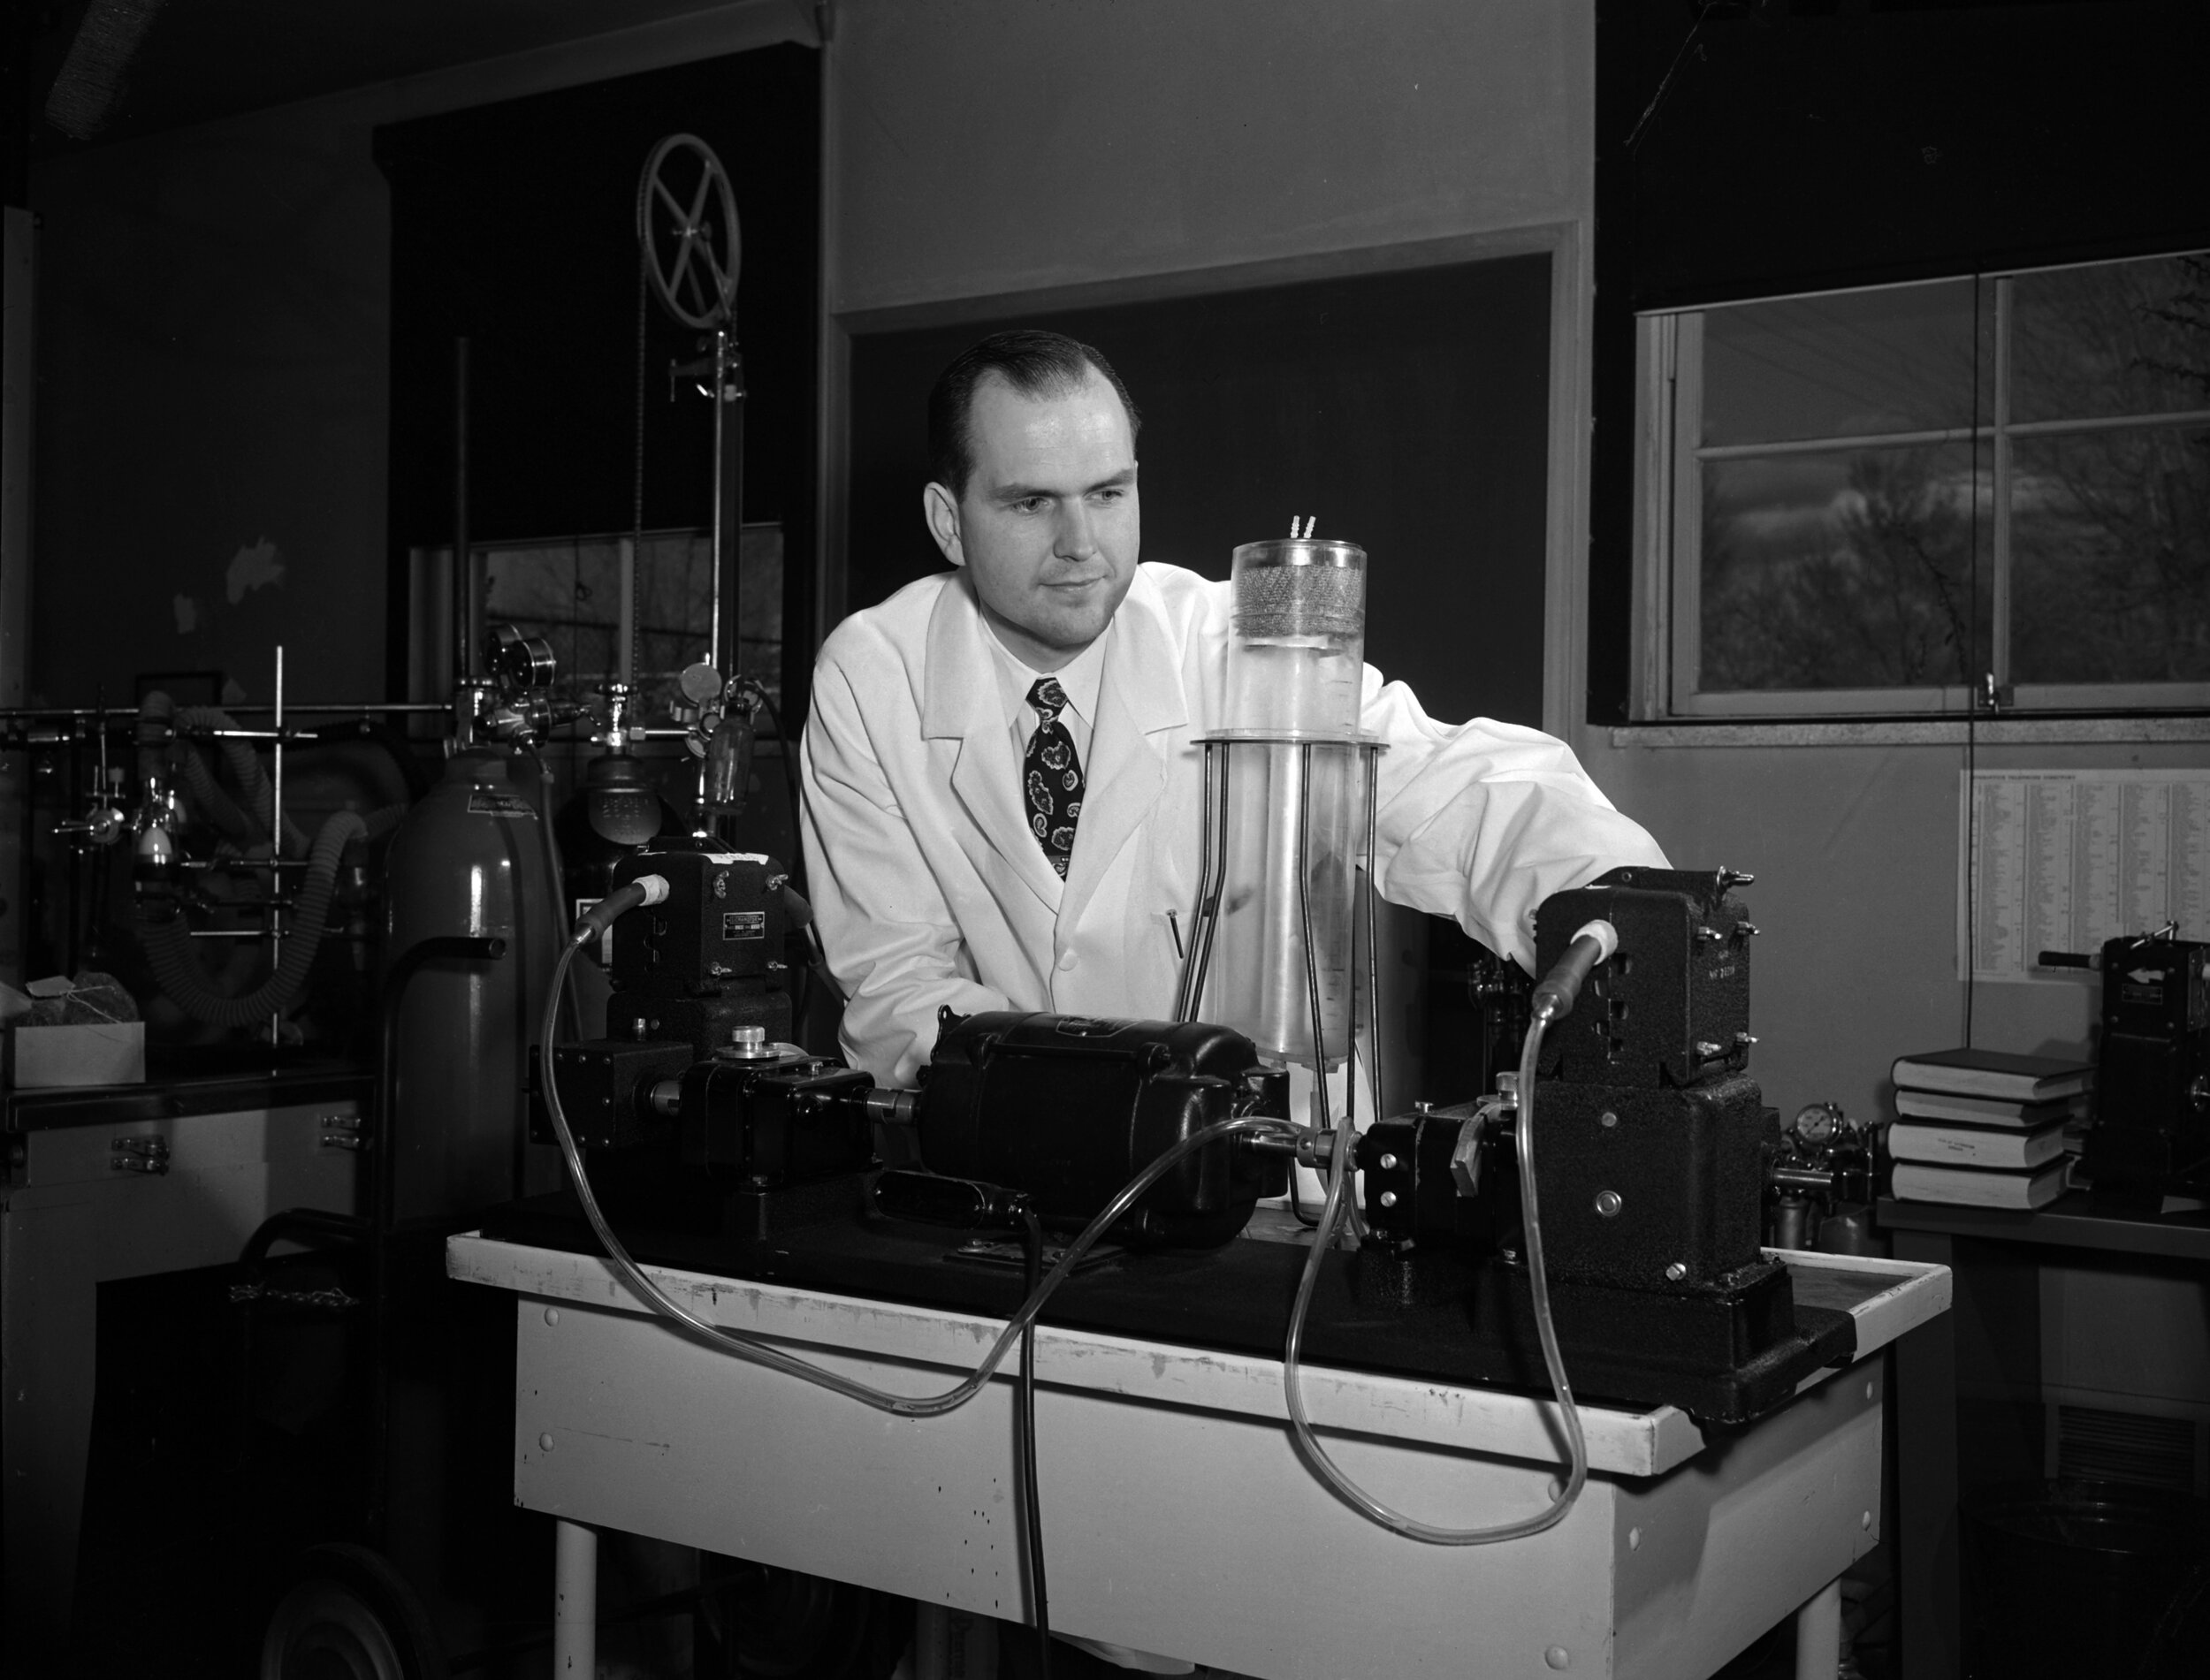 Dr. Nelson with his Heart and Lung Machine on April 8, 1956. Salt Lake Tribune Photograph courtesy of Utah State Historical Society.